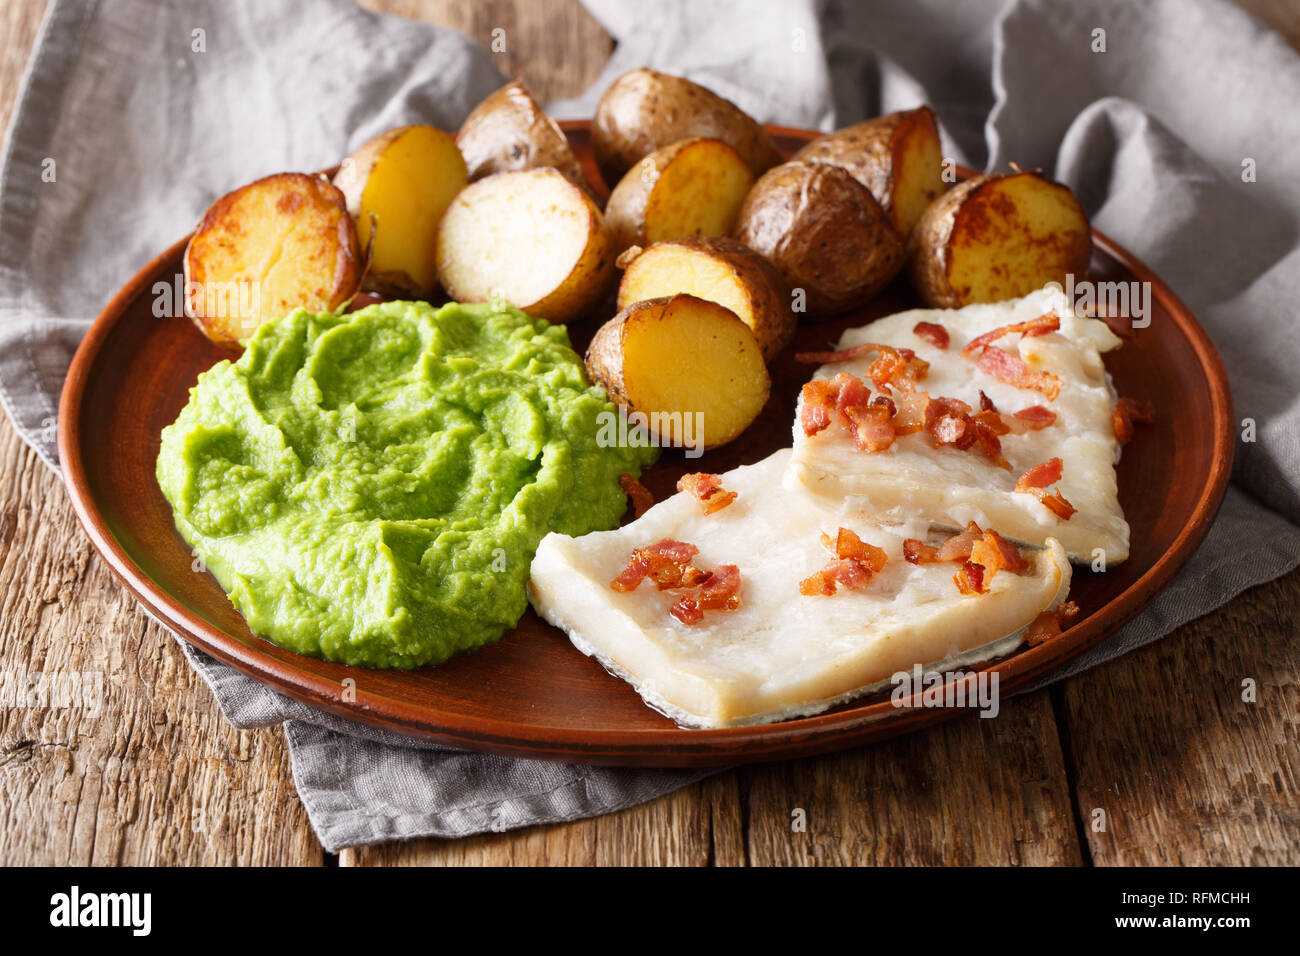 Traditional Scandinavian dish lutefisk served with pea puree, potatoes and bacon close-up on a plate. horizontal - Stock Image